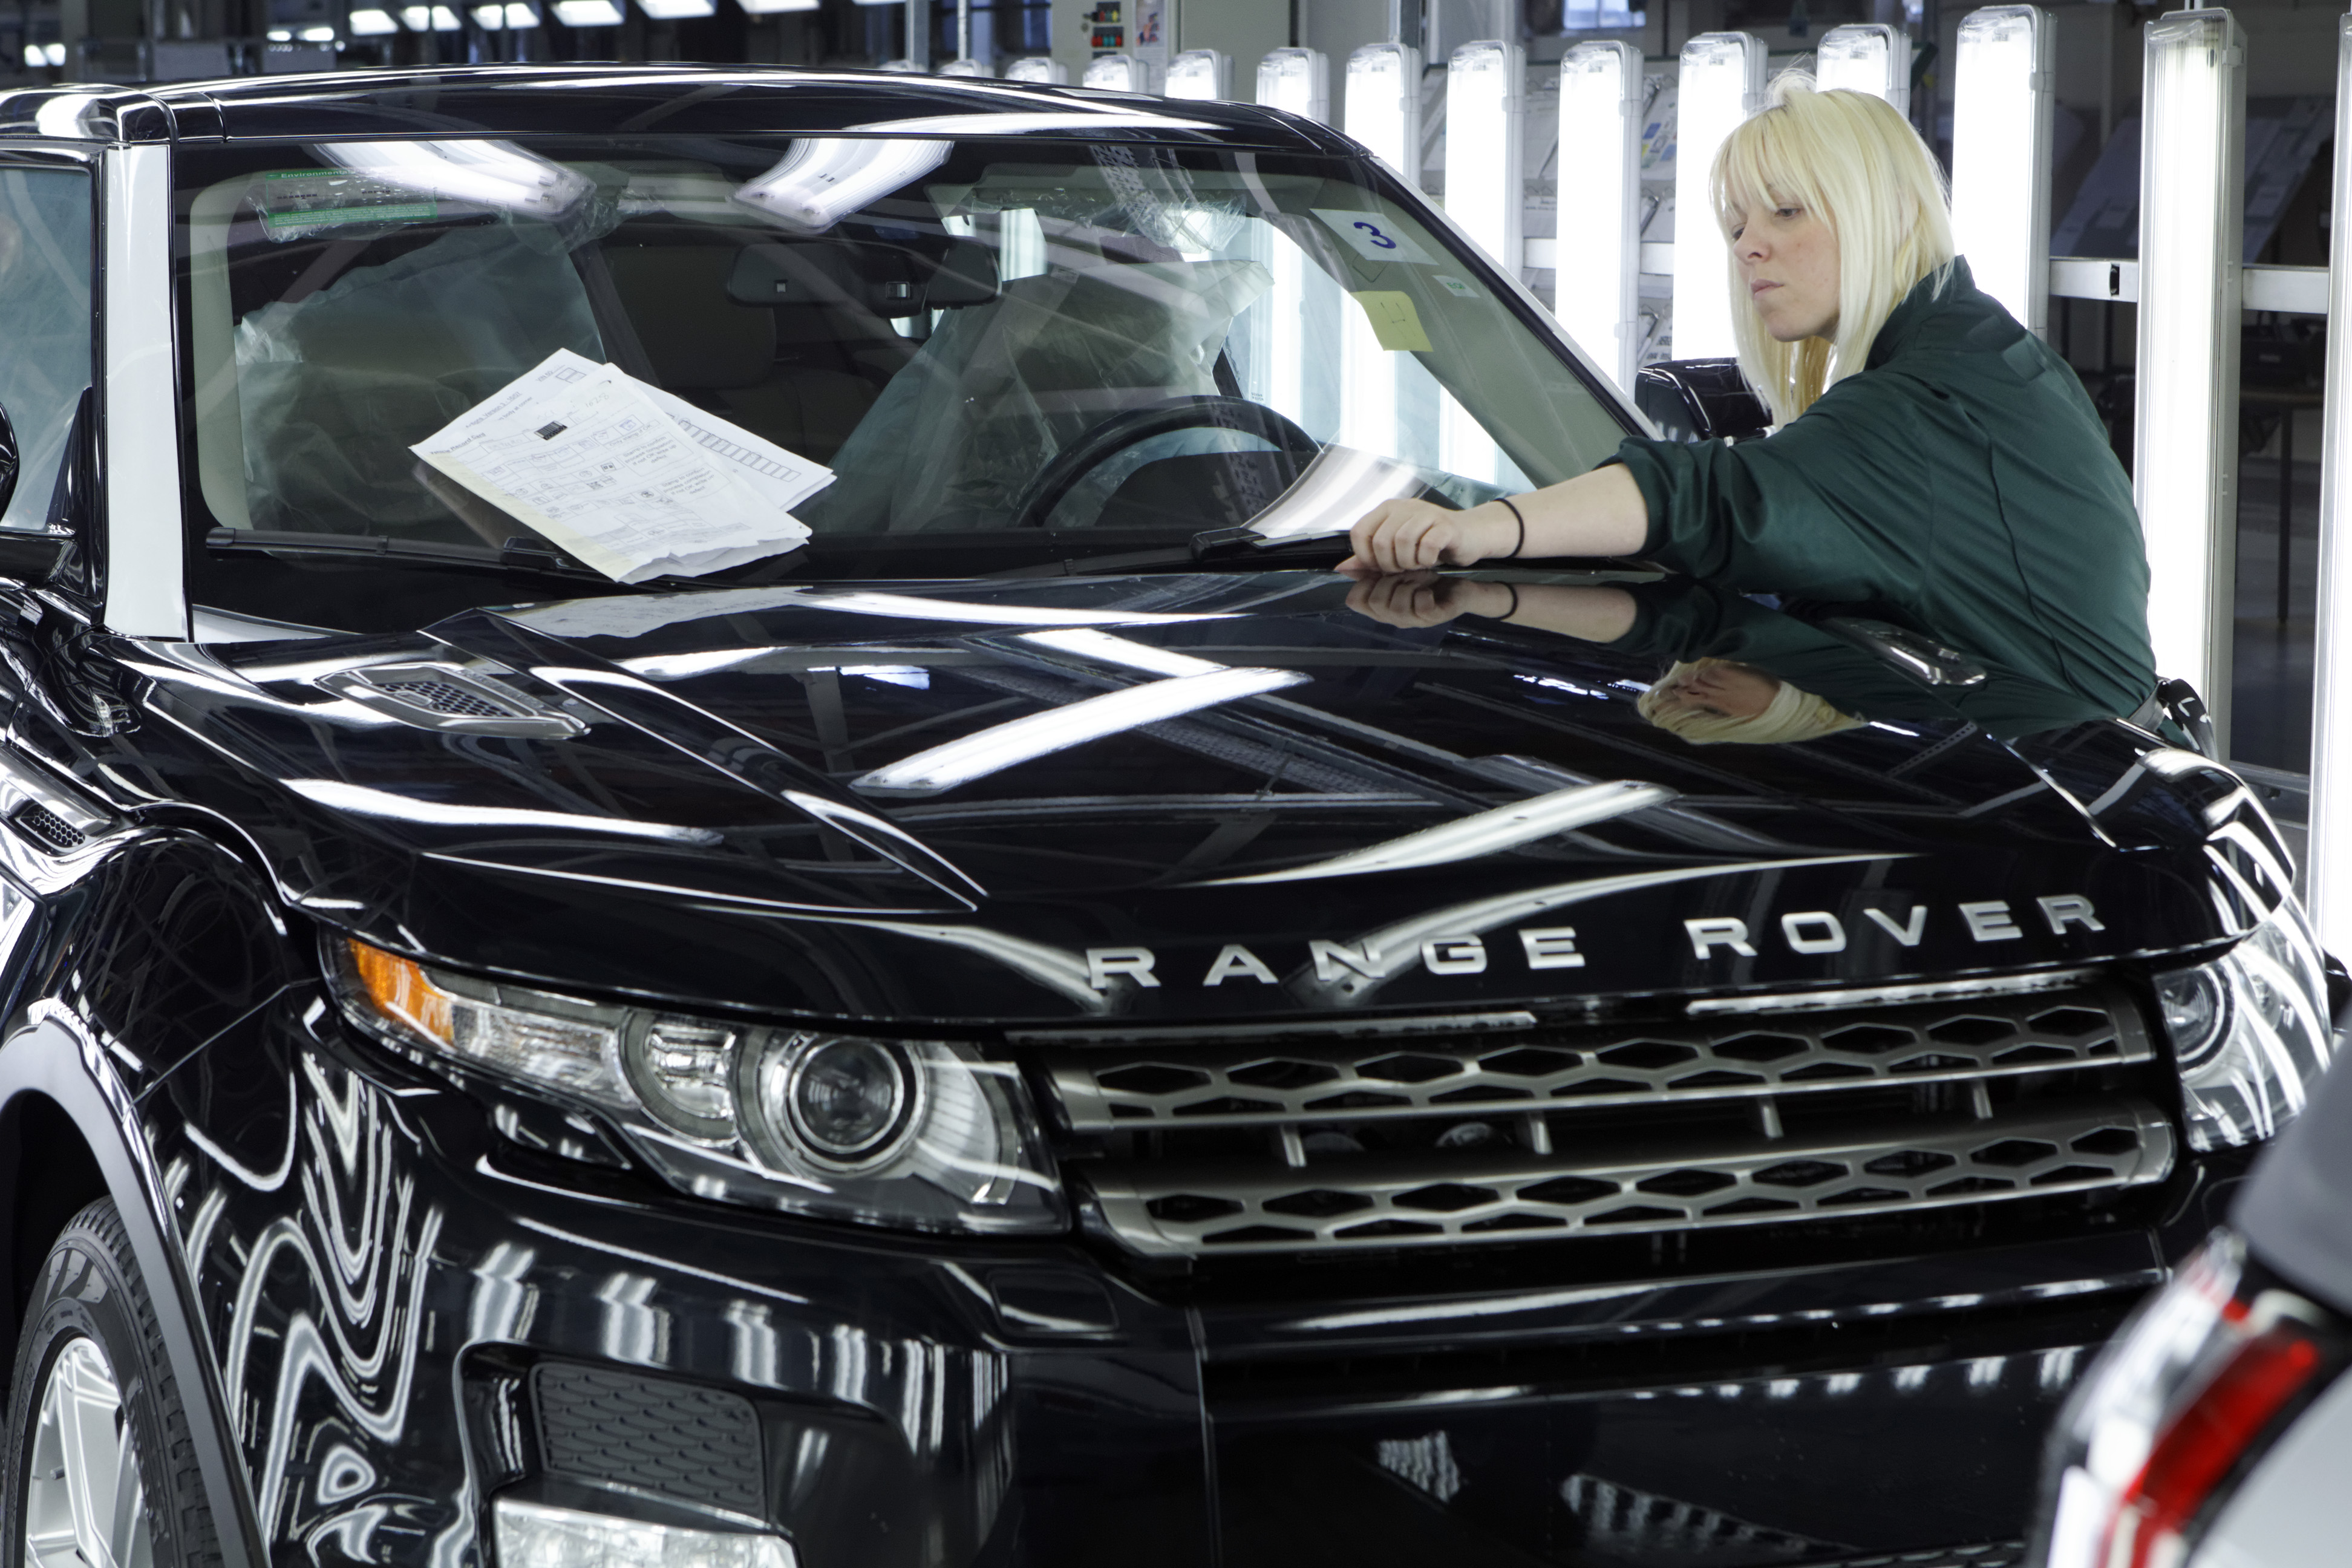 JLR creates 1,000 new jobs to increase UK production